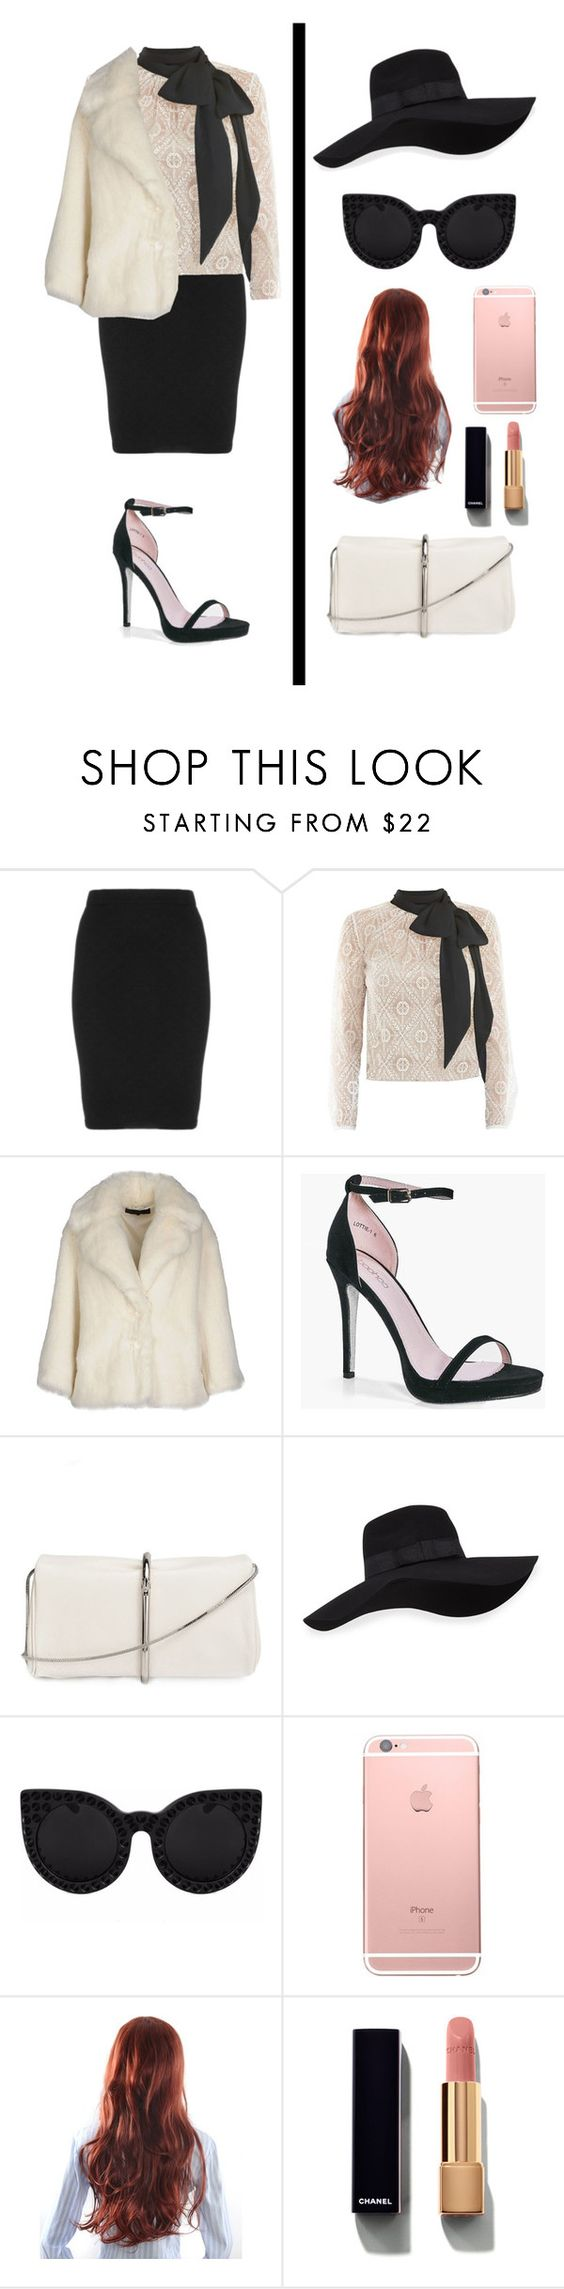 """""""Wonder Women"""" by mgldemartino ❤ liked on Polyvore featuring Manon Baptiste, Victor Xenia, American Retro, Boohoo, 3.1 Phillip Lim, San Diego Hat Co., Chanel, wonderwoman and intoyou"""